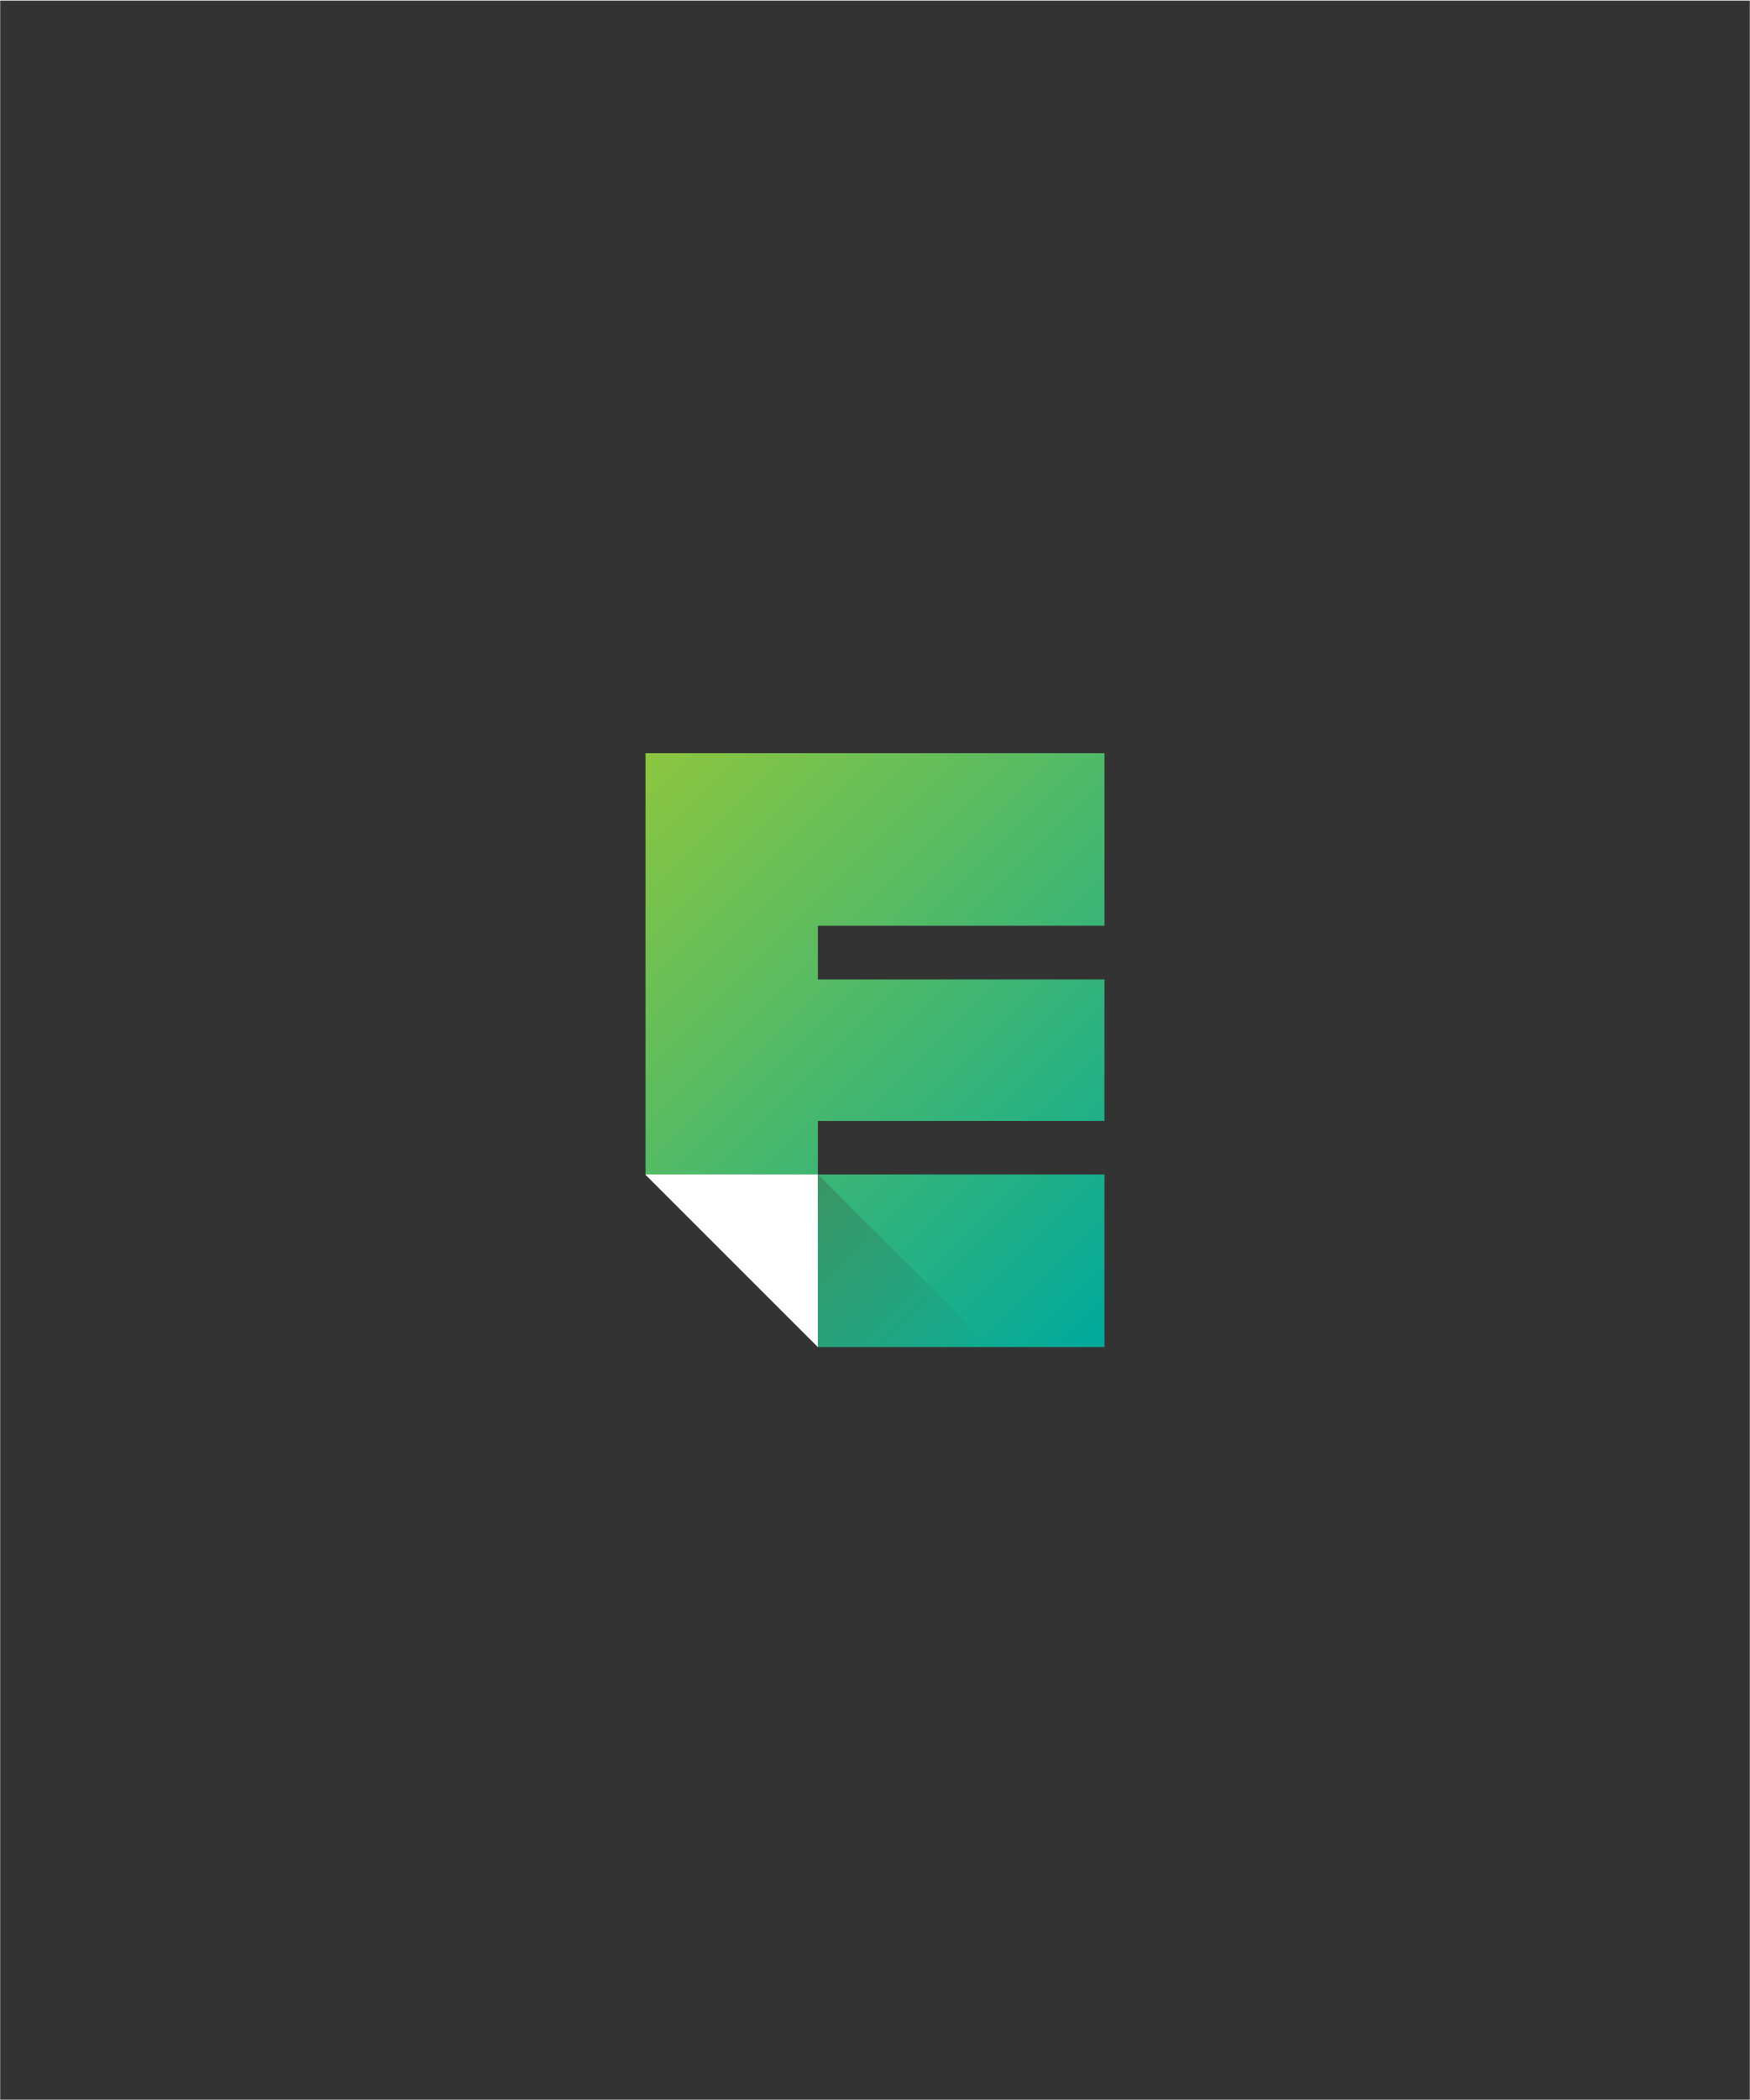 Image of Evolving Edge logo with a grey background